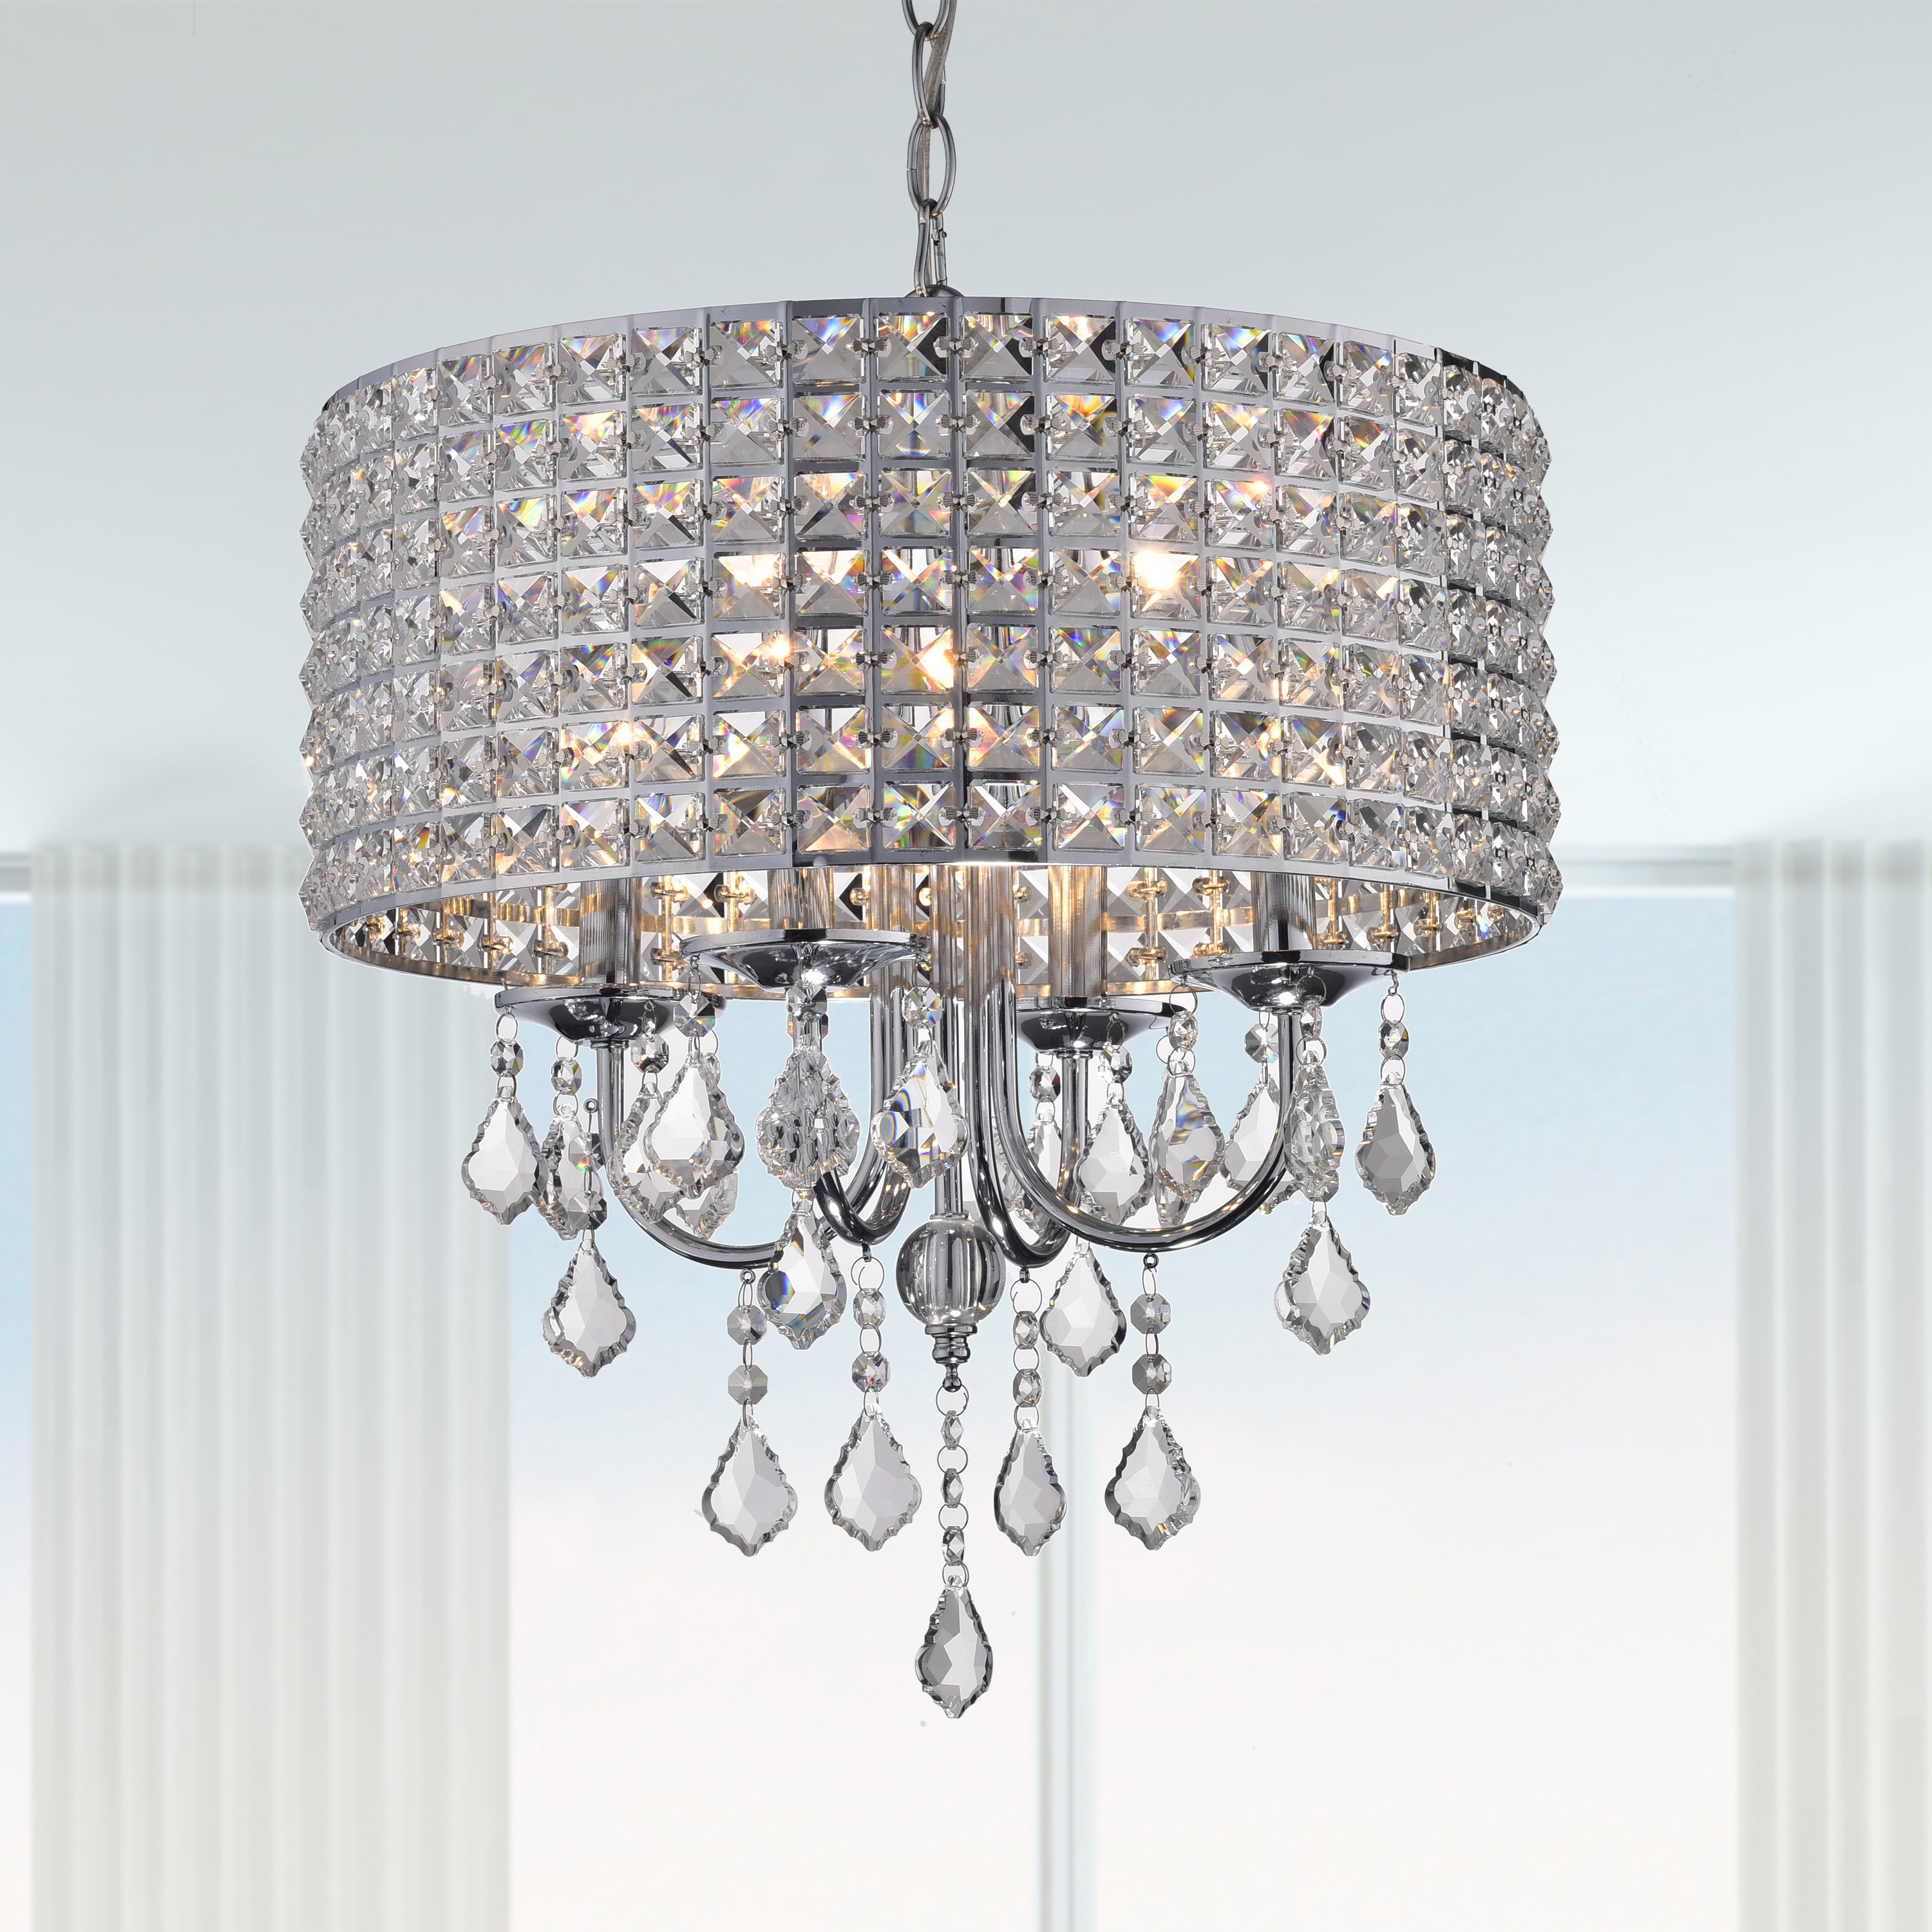 Albano 4 Light Crystal Chandelier Throughout Most Popular Albano 4 Light Crystal Chandeliers (View 3 of 25)